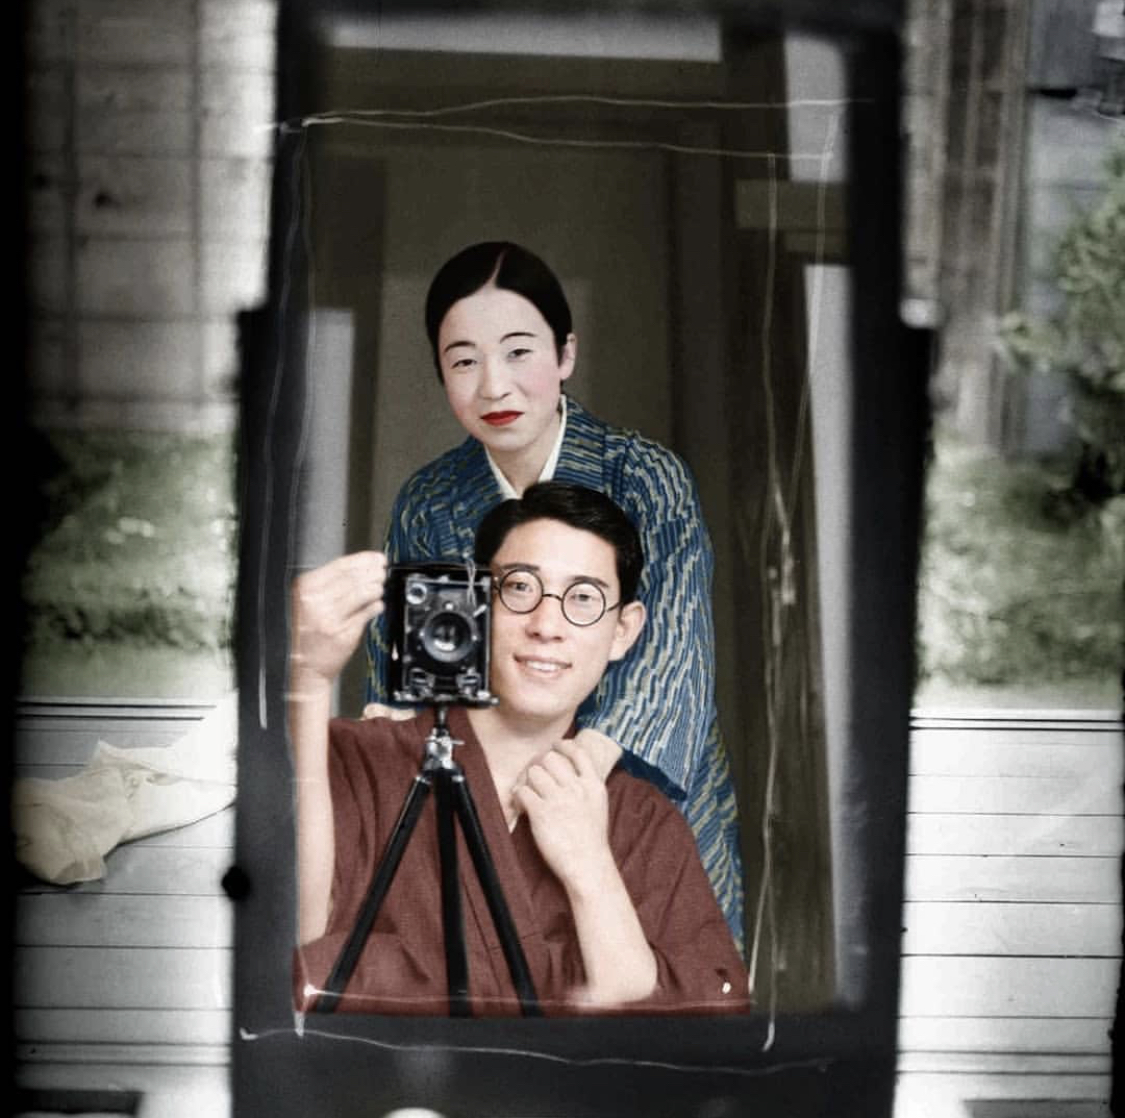 100-year-old Japanese couple selfie, colourised